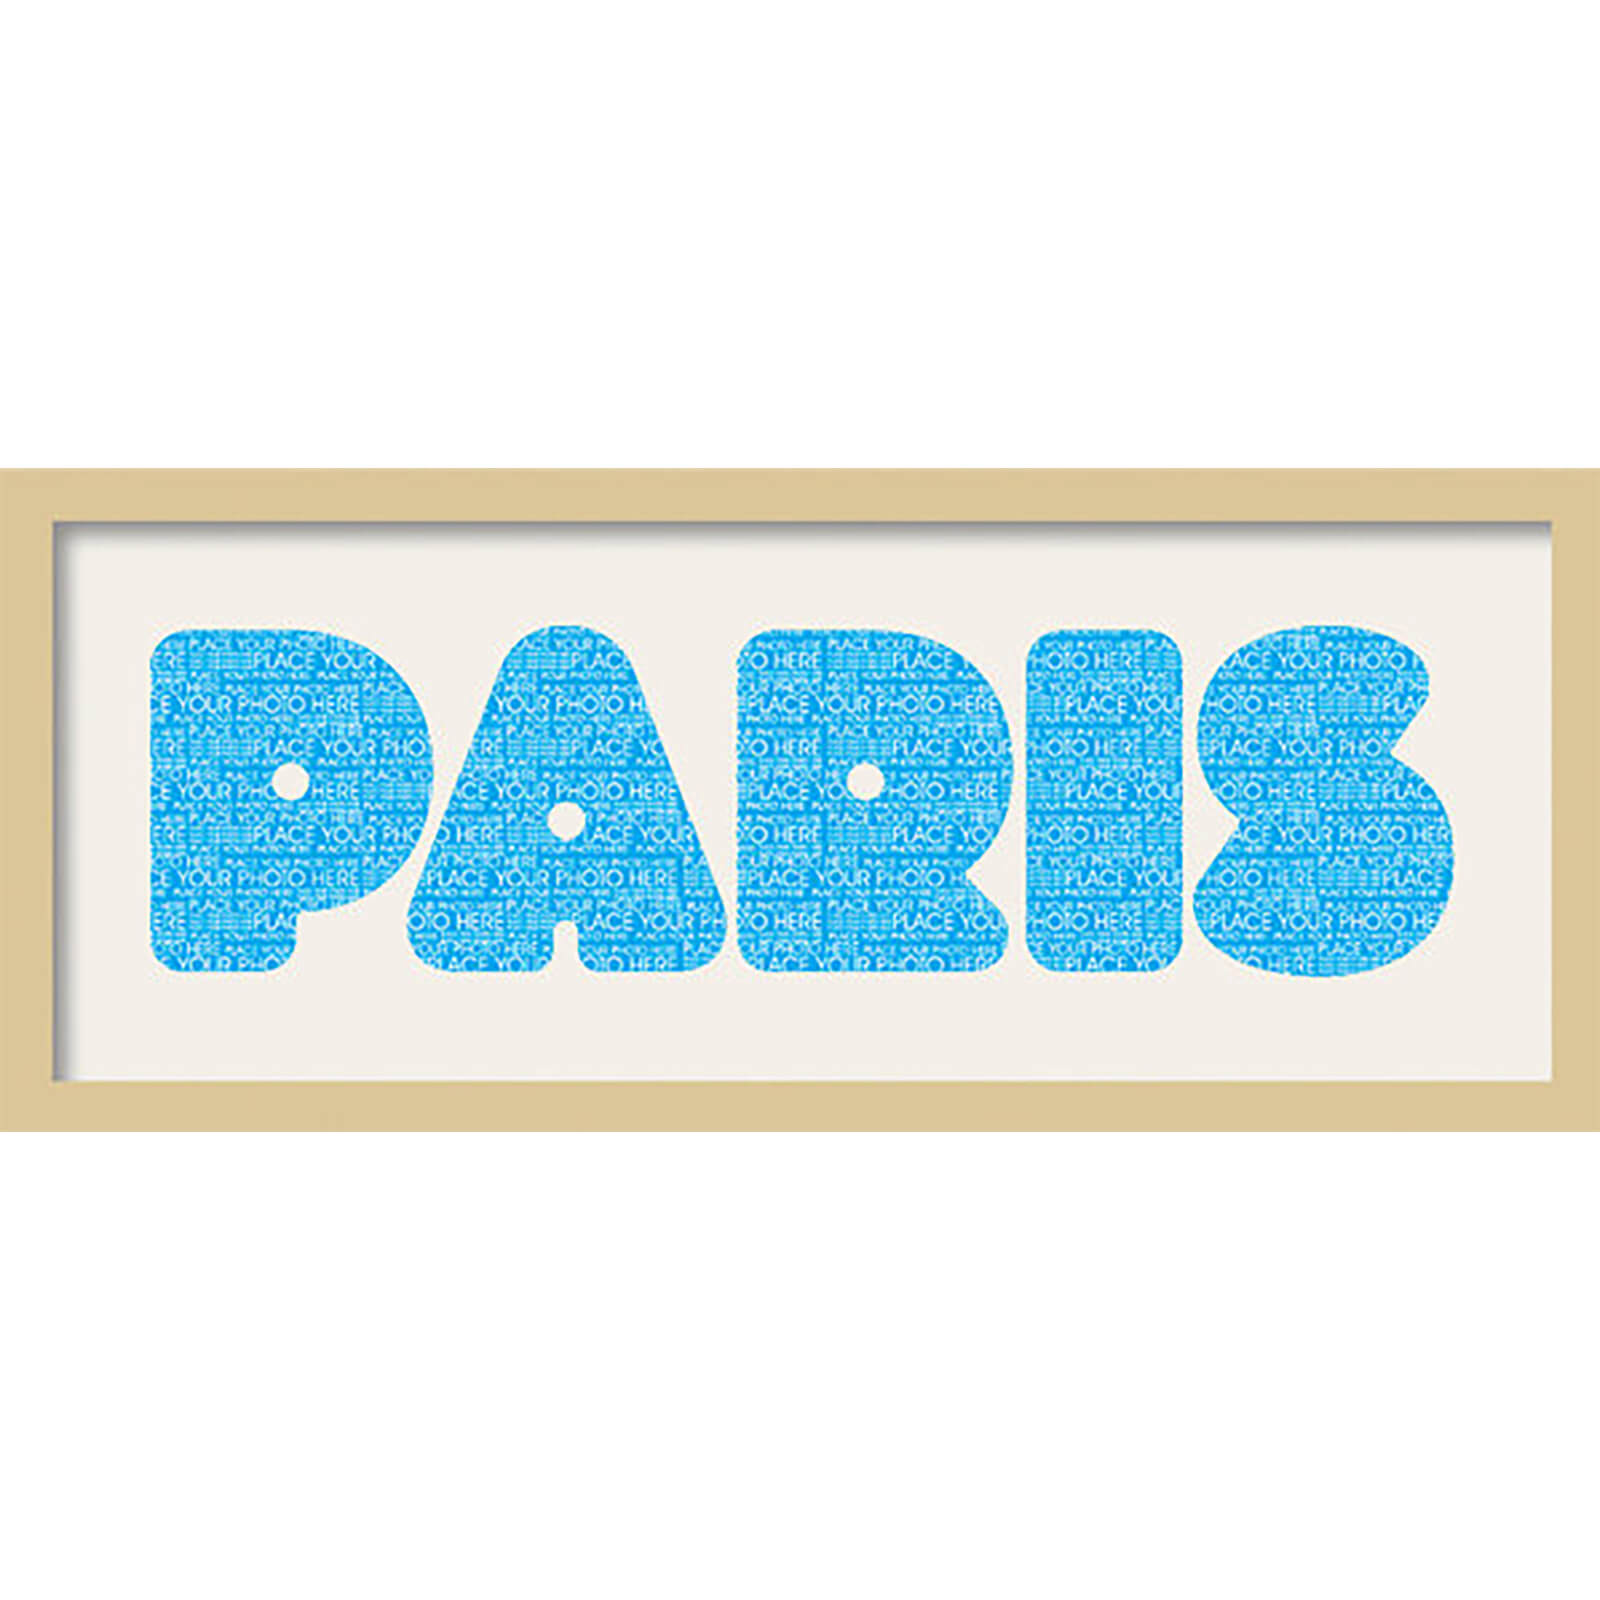 "GB Cream Mount Paris Fatty Font - Framed Mount - 12"""" x 30"""